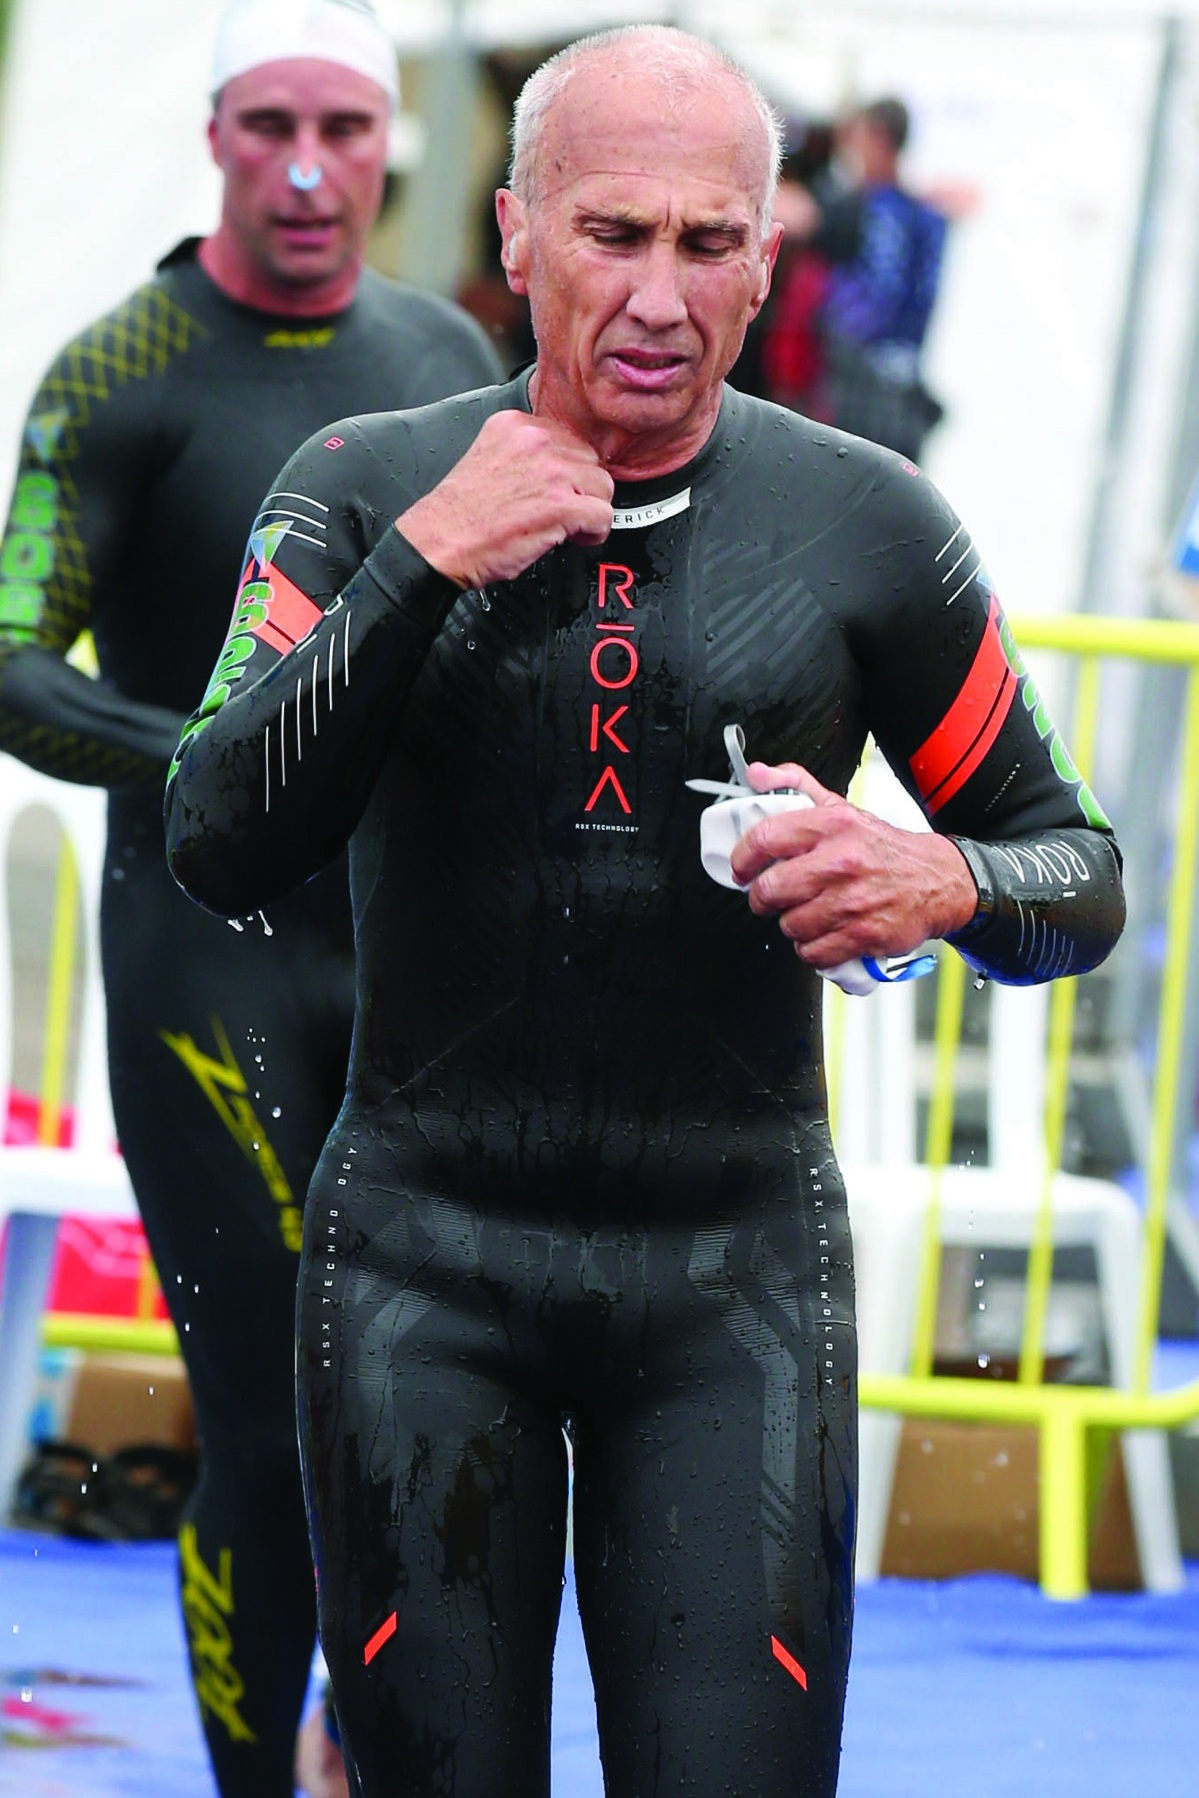 Lee right after getting out of the water during the ITU Aquabike World Championships in Denmark last year.